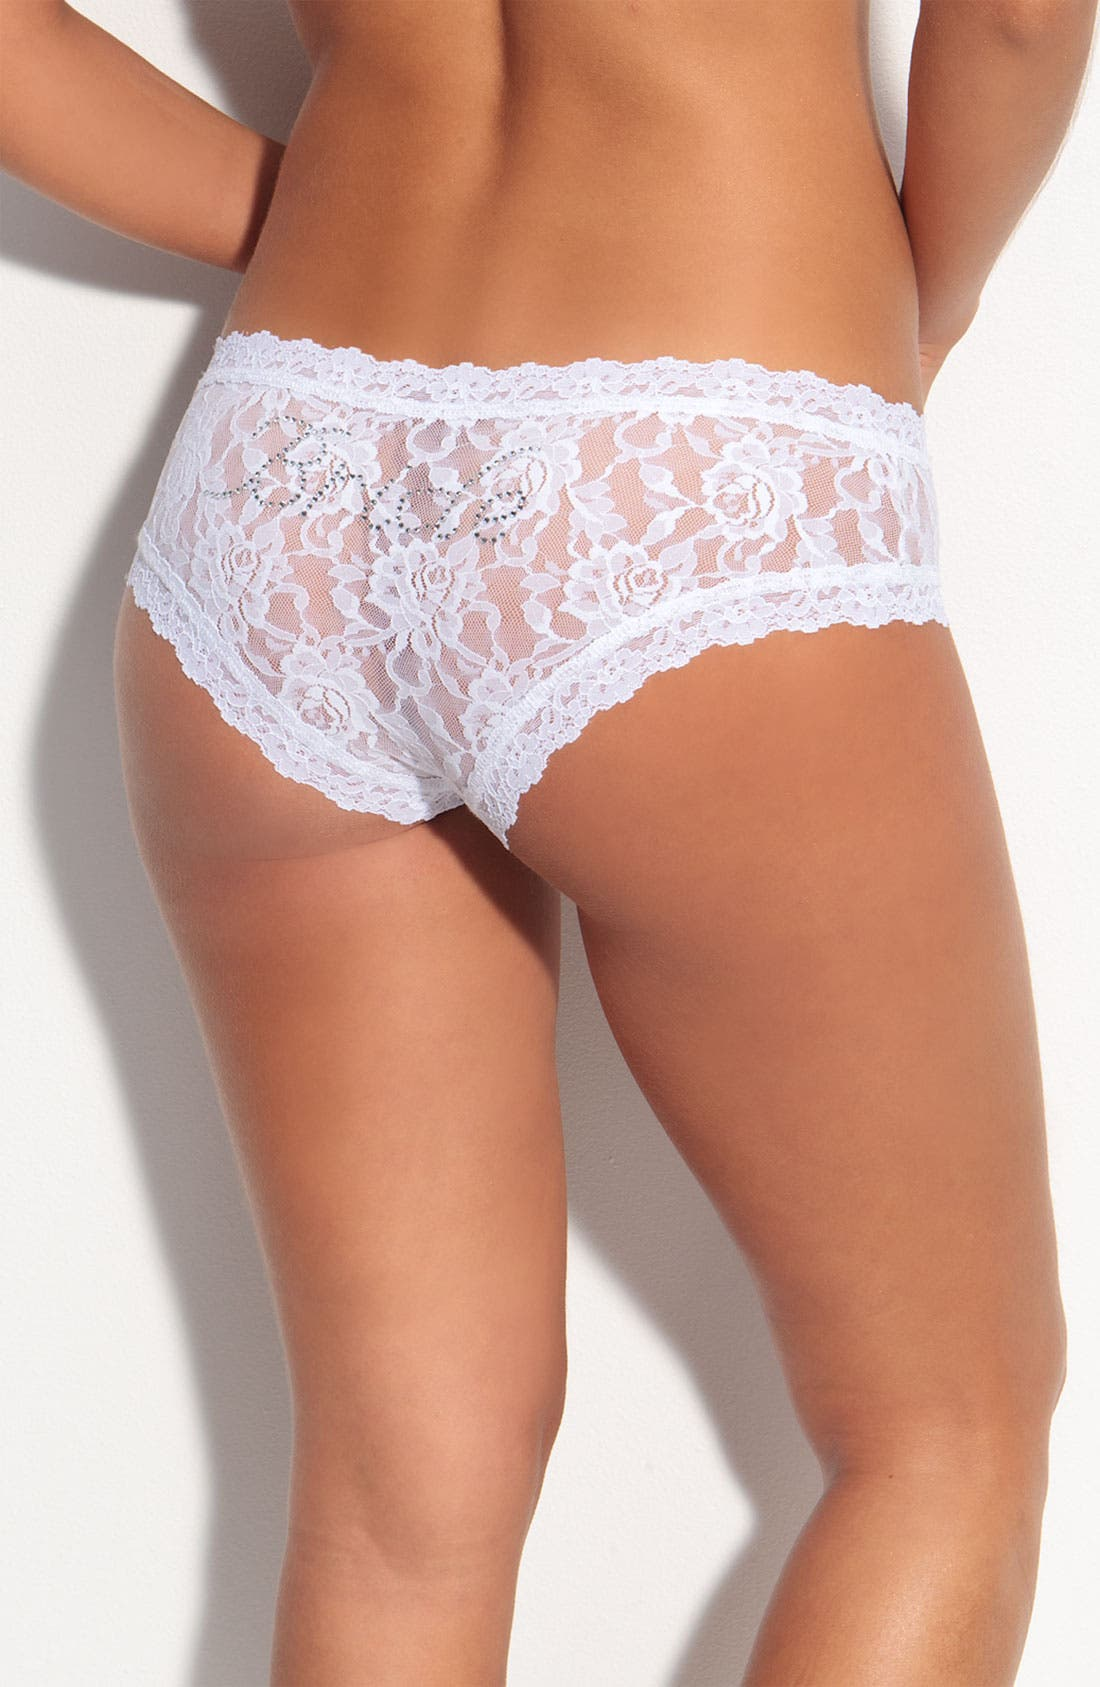 'Bride' Lace Hipster Panties,                         Main,                         color, WHITE